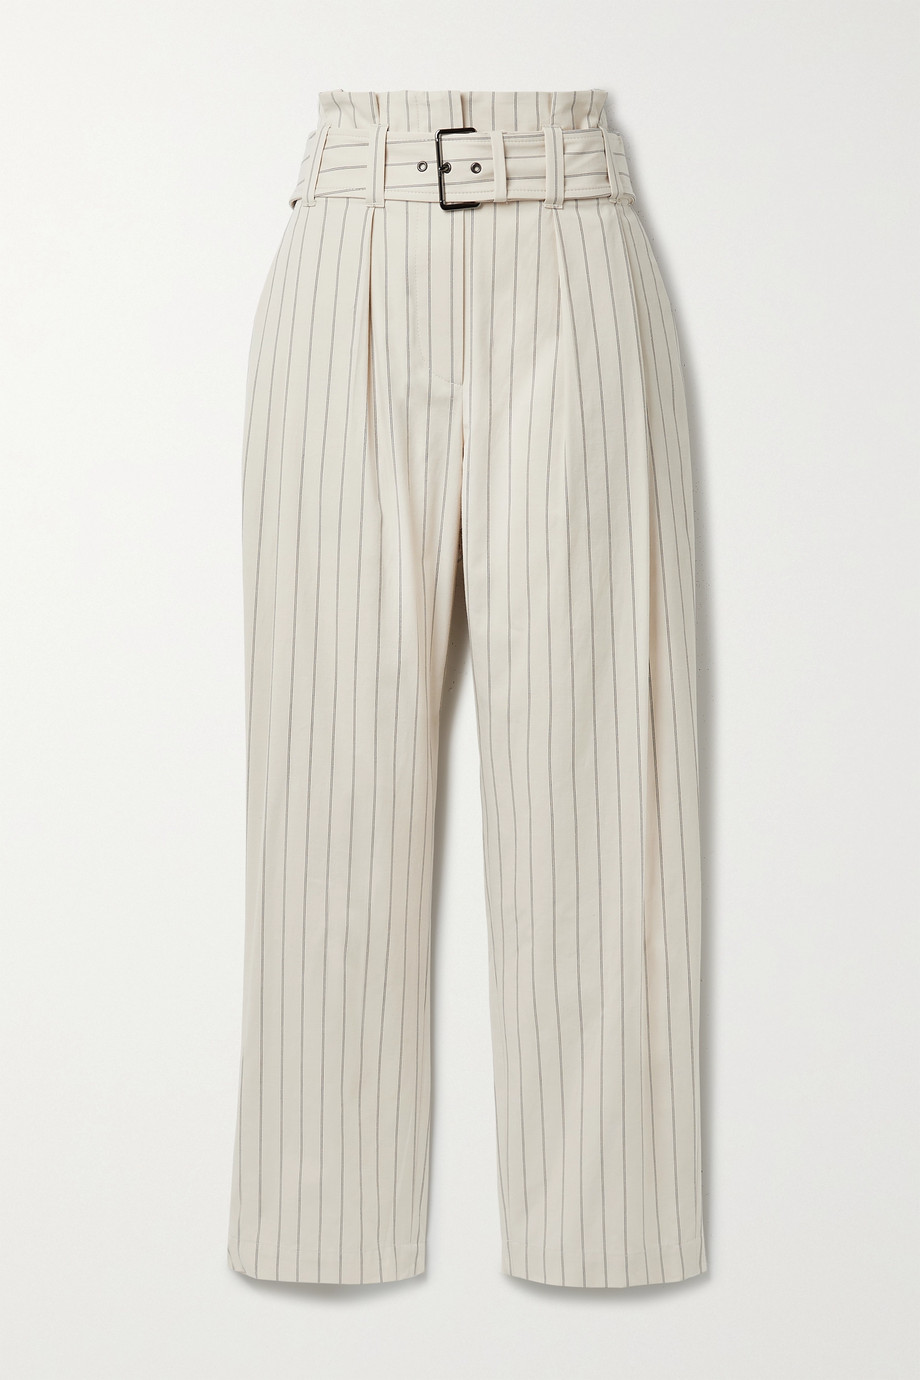 Brunello Cucinelli Regimental belted pleated pinstriped cotton-blend straight-leg pants